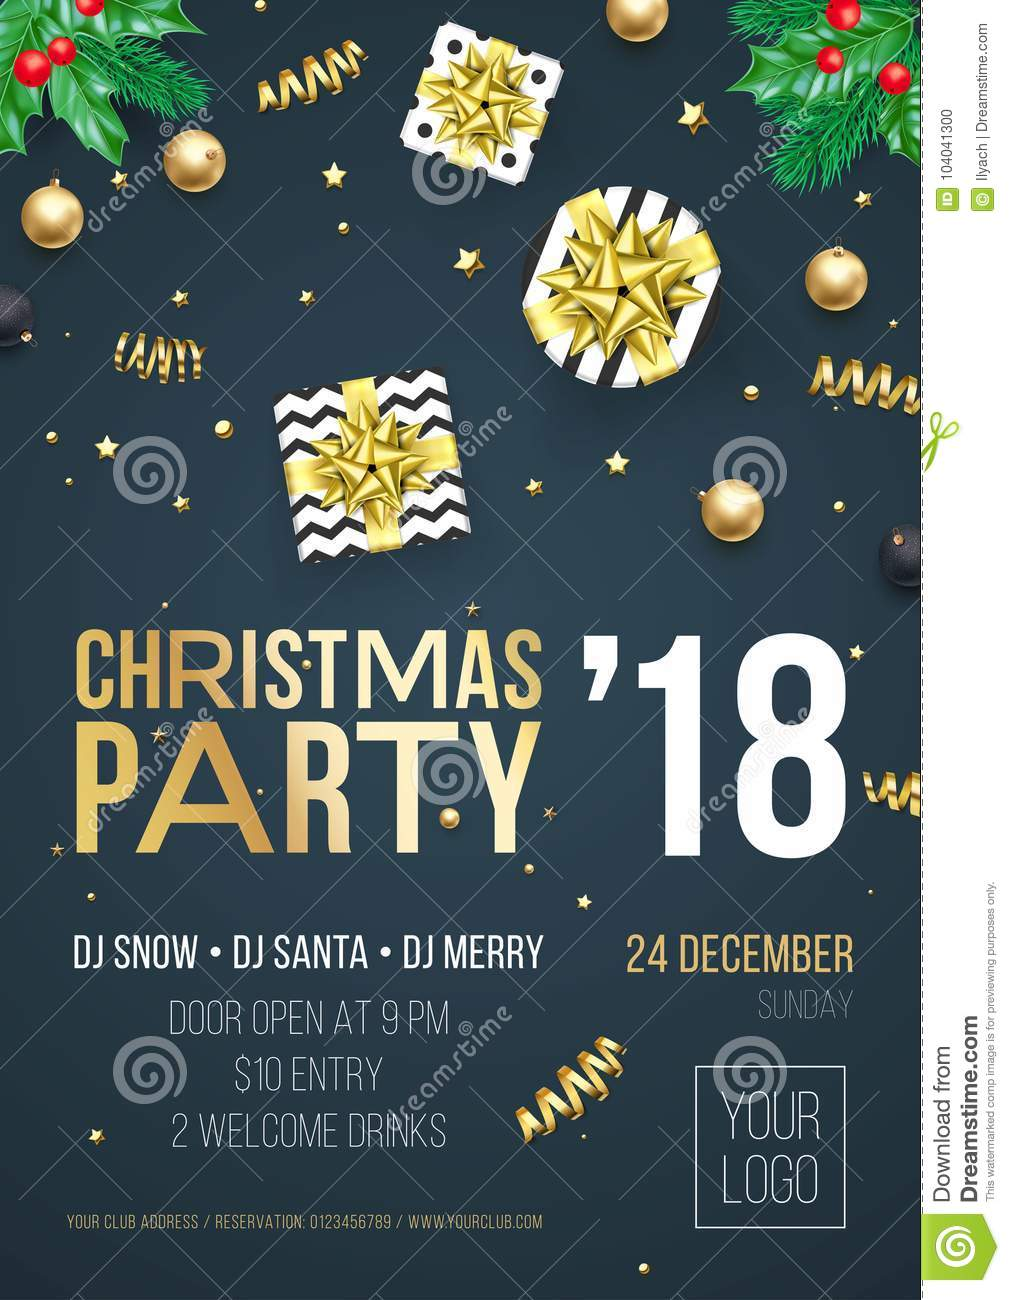 christmas party 2018 invitation poster design template of golden new year decoration and gold glitter christmas